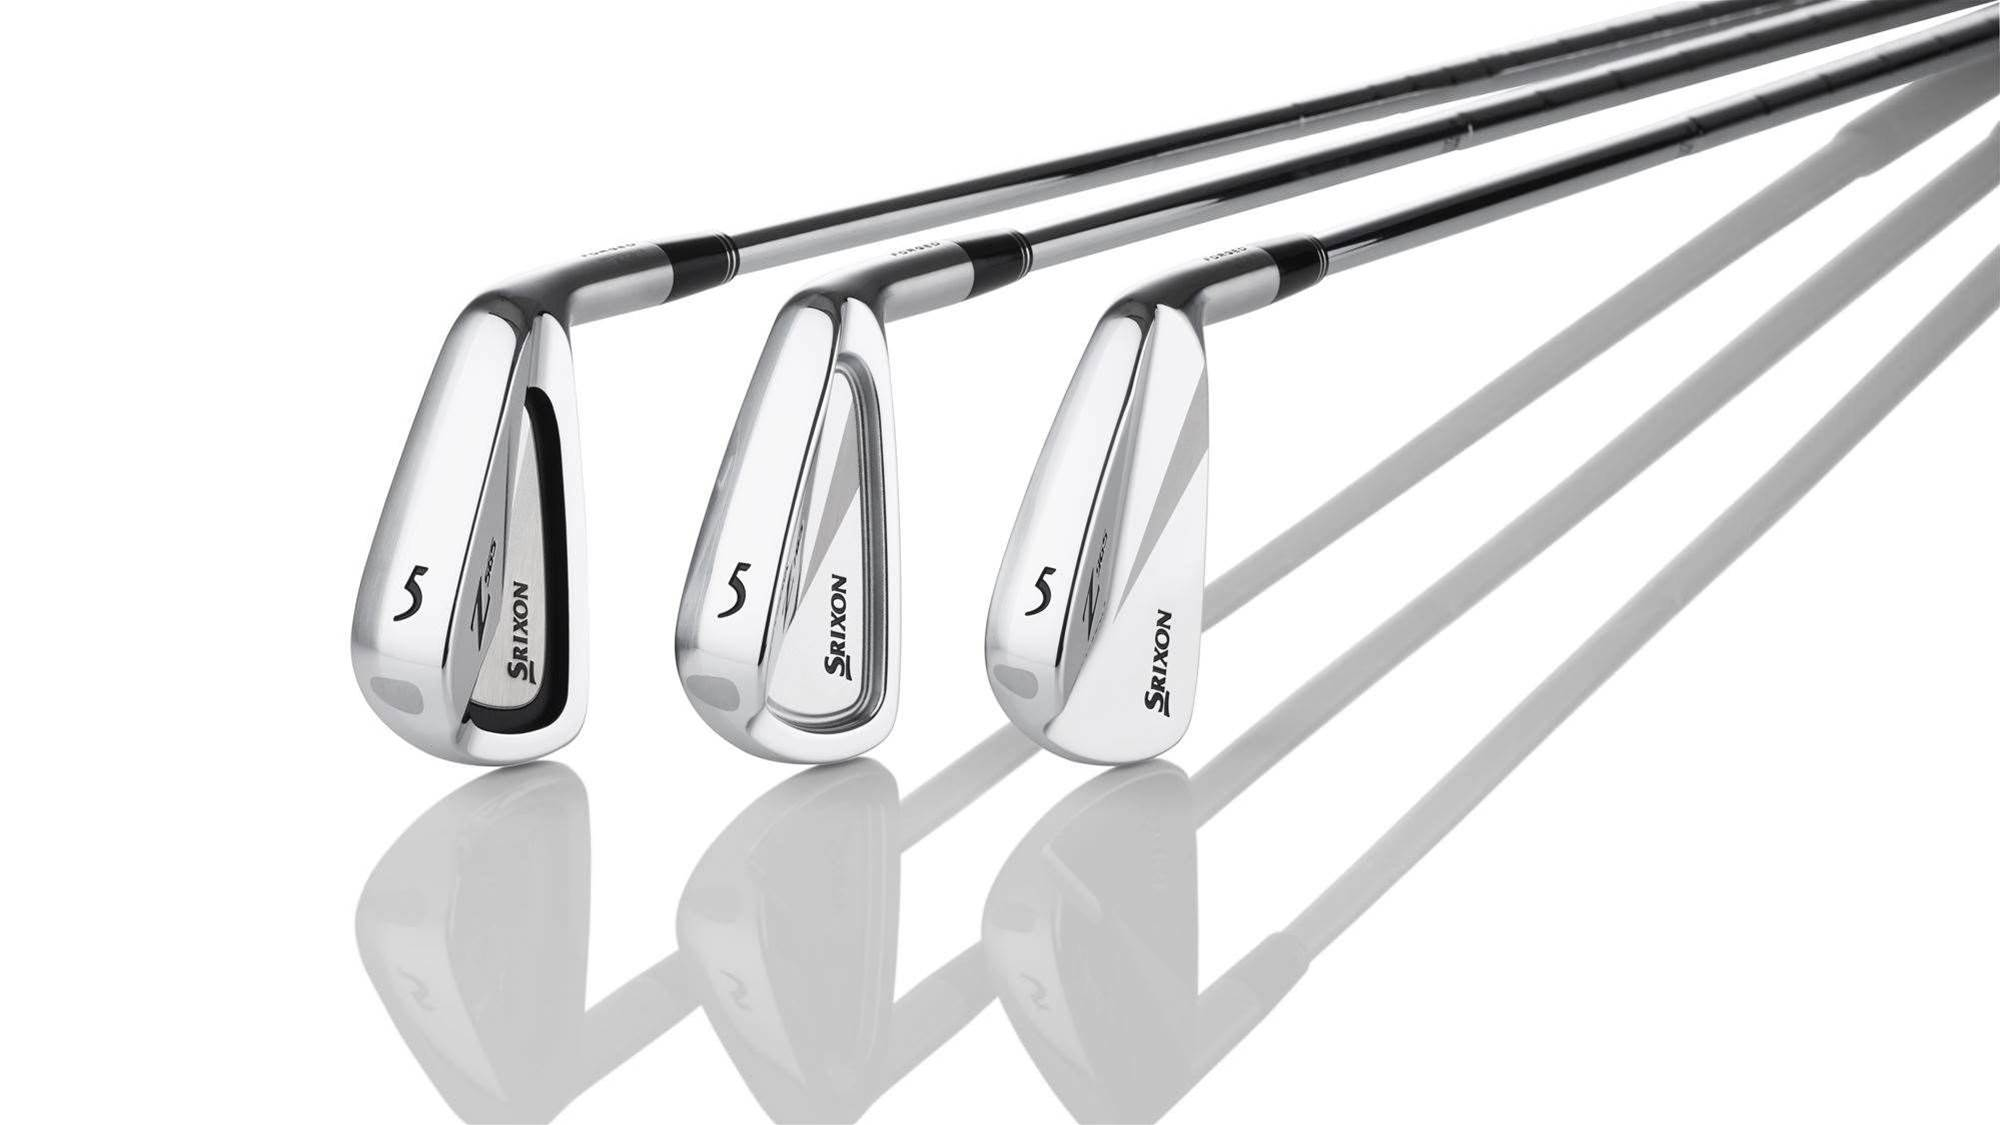 NEW GEAR: Srixon Z Series irons